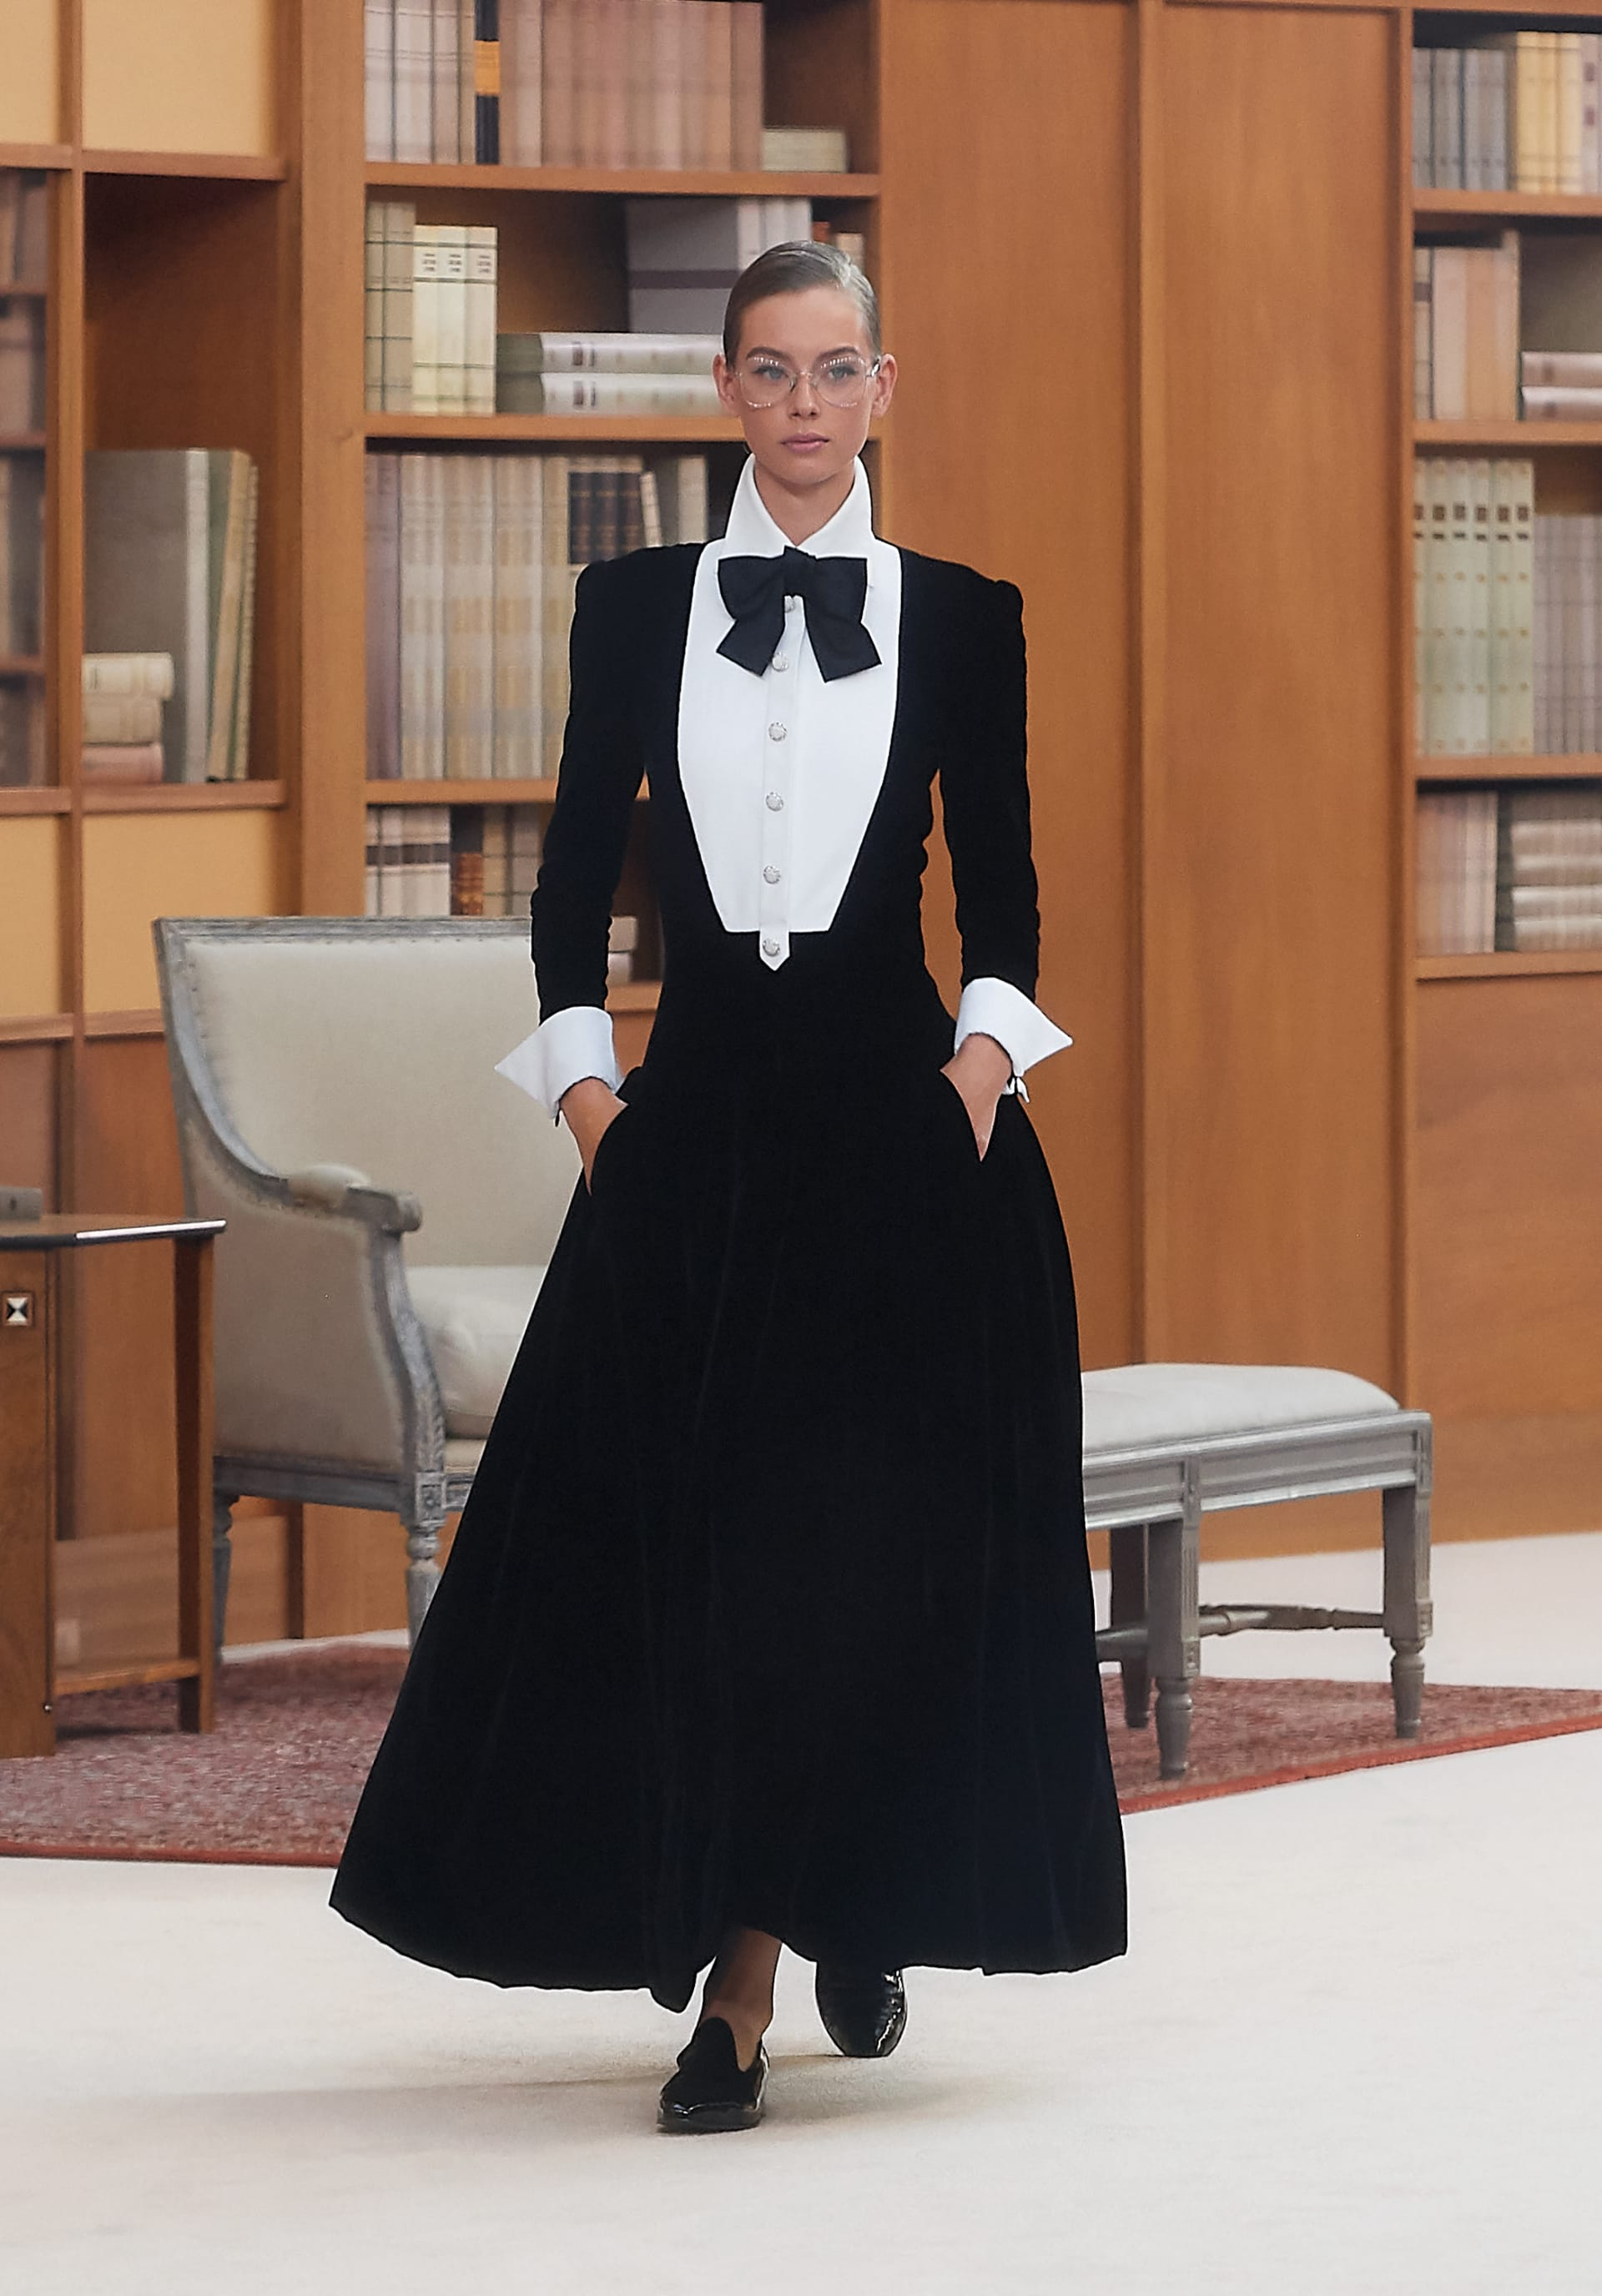 View 1 - Look 54 - Fall-Winter 2019/20 Haute-Couture - see full sized version